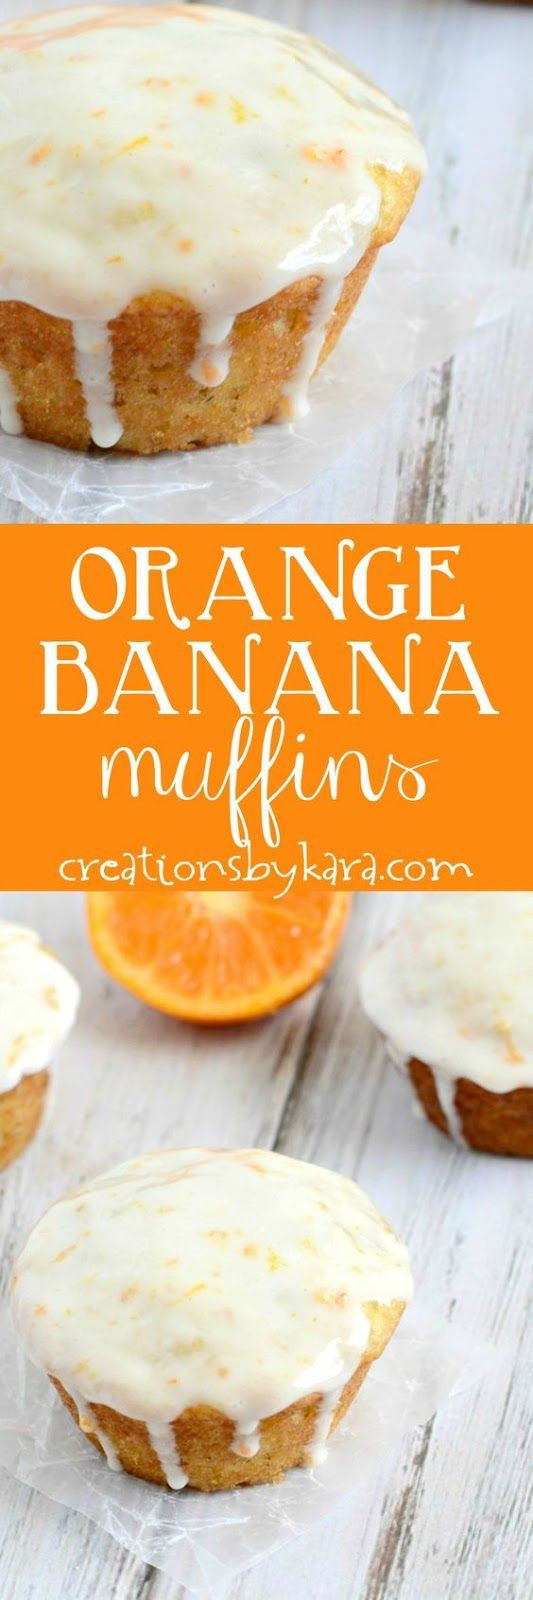 Orange Banana Muffins with Sour Cream Glaze | Food And Cake Recipes